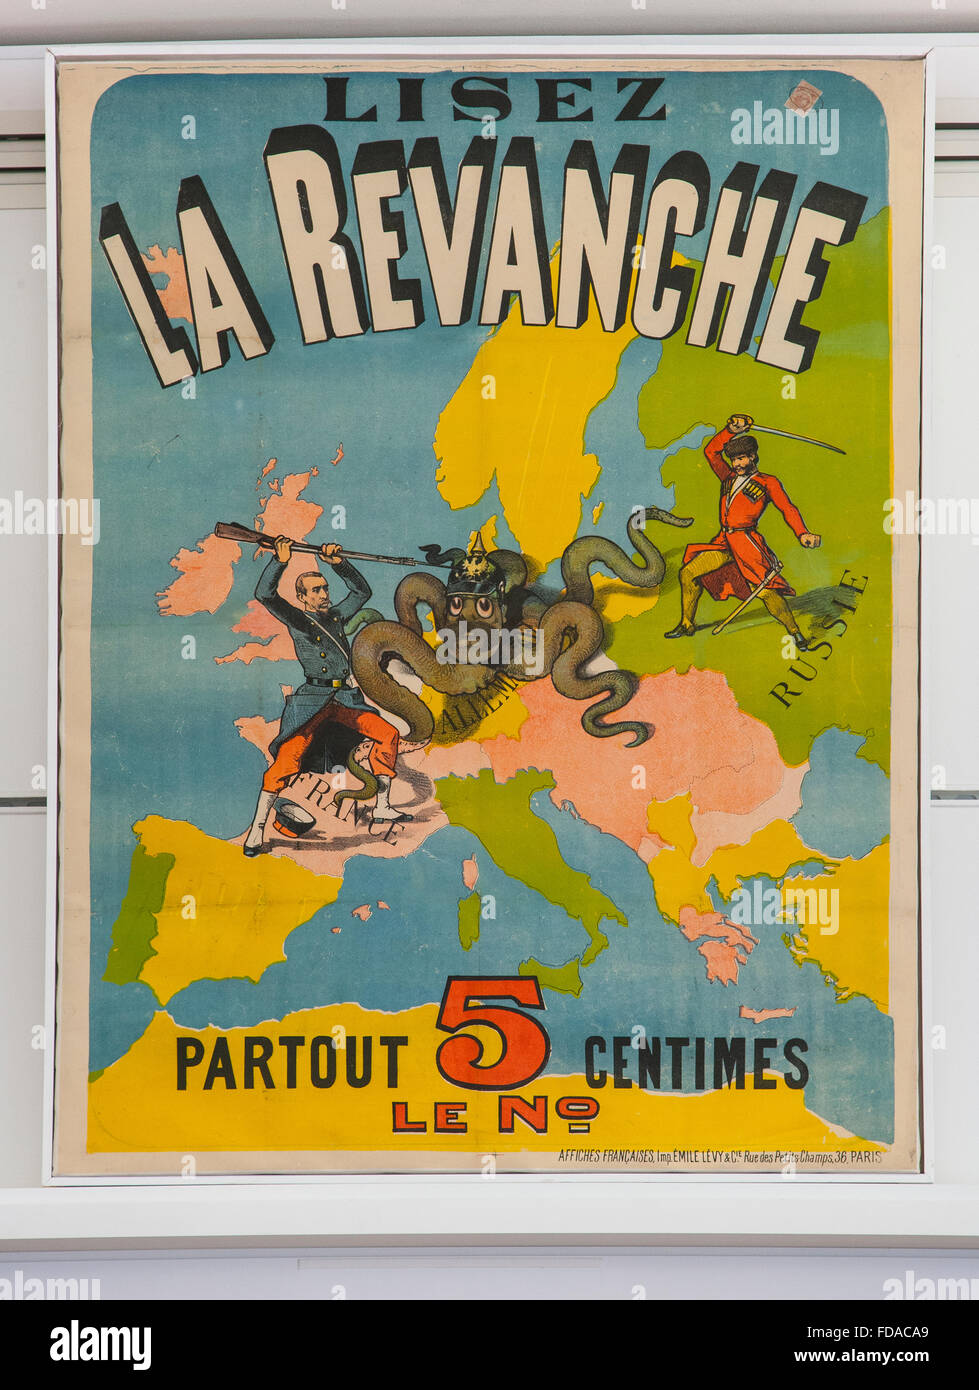 la revanche great war publication front cover book - Stock Image